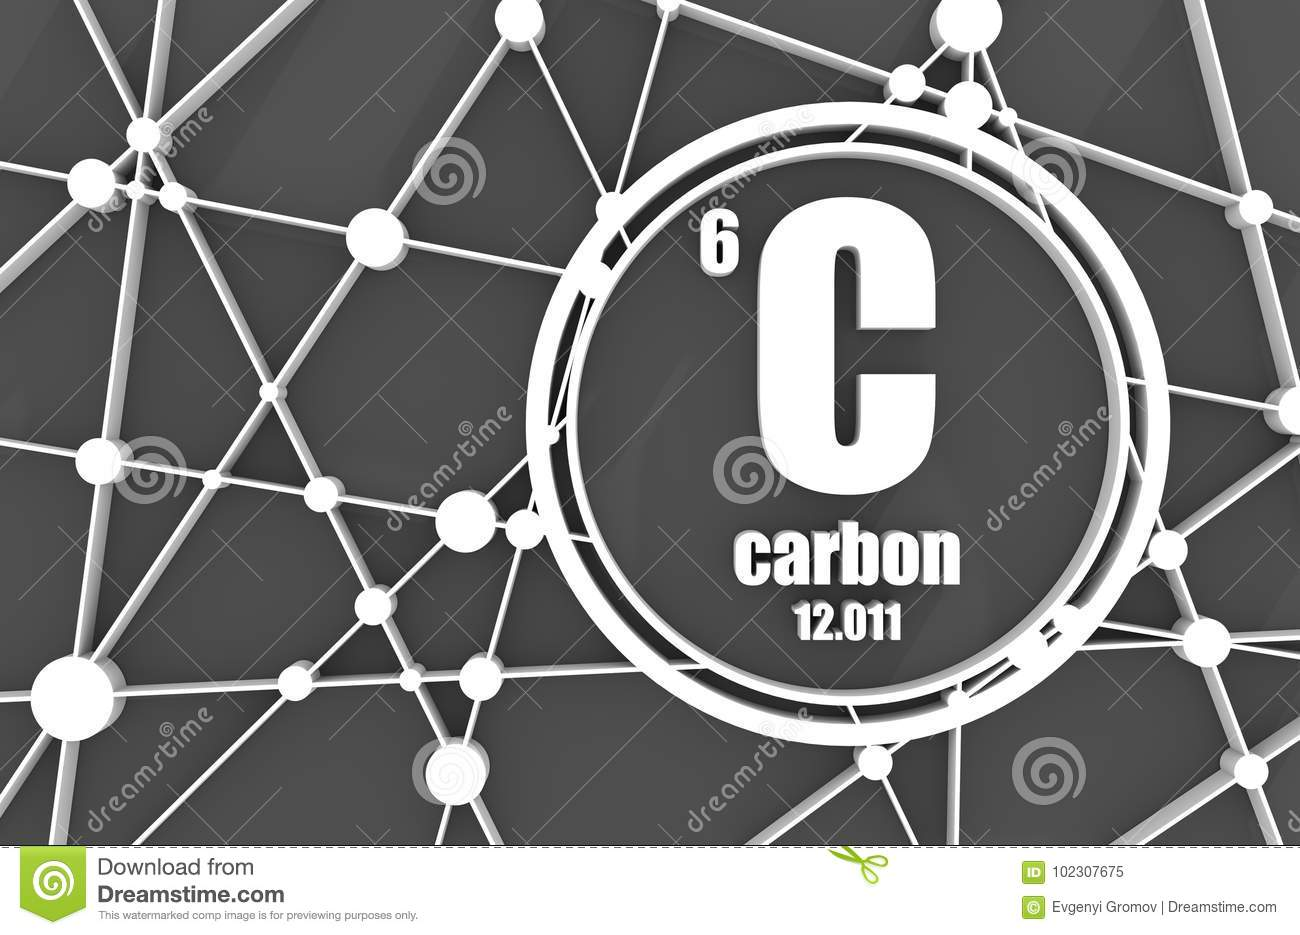 Chemical symbols for carbon image collections symbol and sign ideas chemical symbols for carbon gallery symbol and sign ideas carbon periodic table symbol gallery symbol and buycottarizona